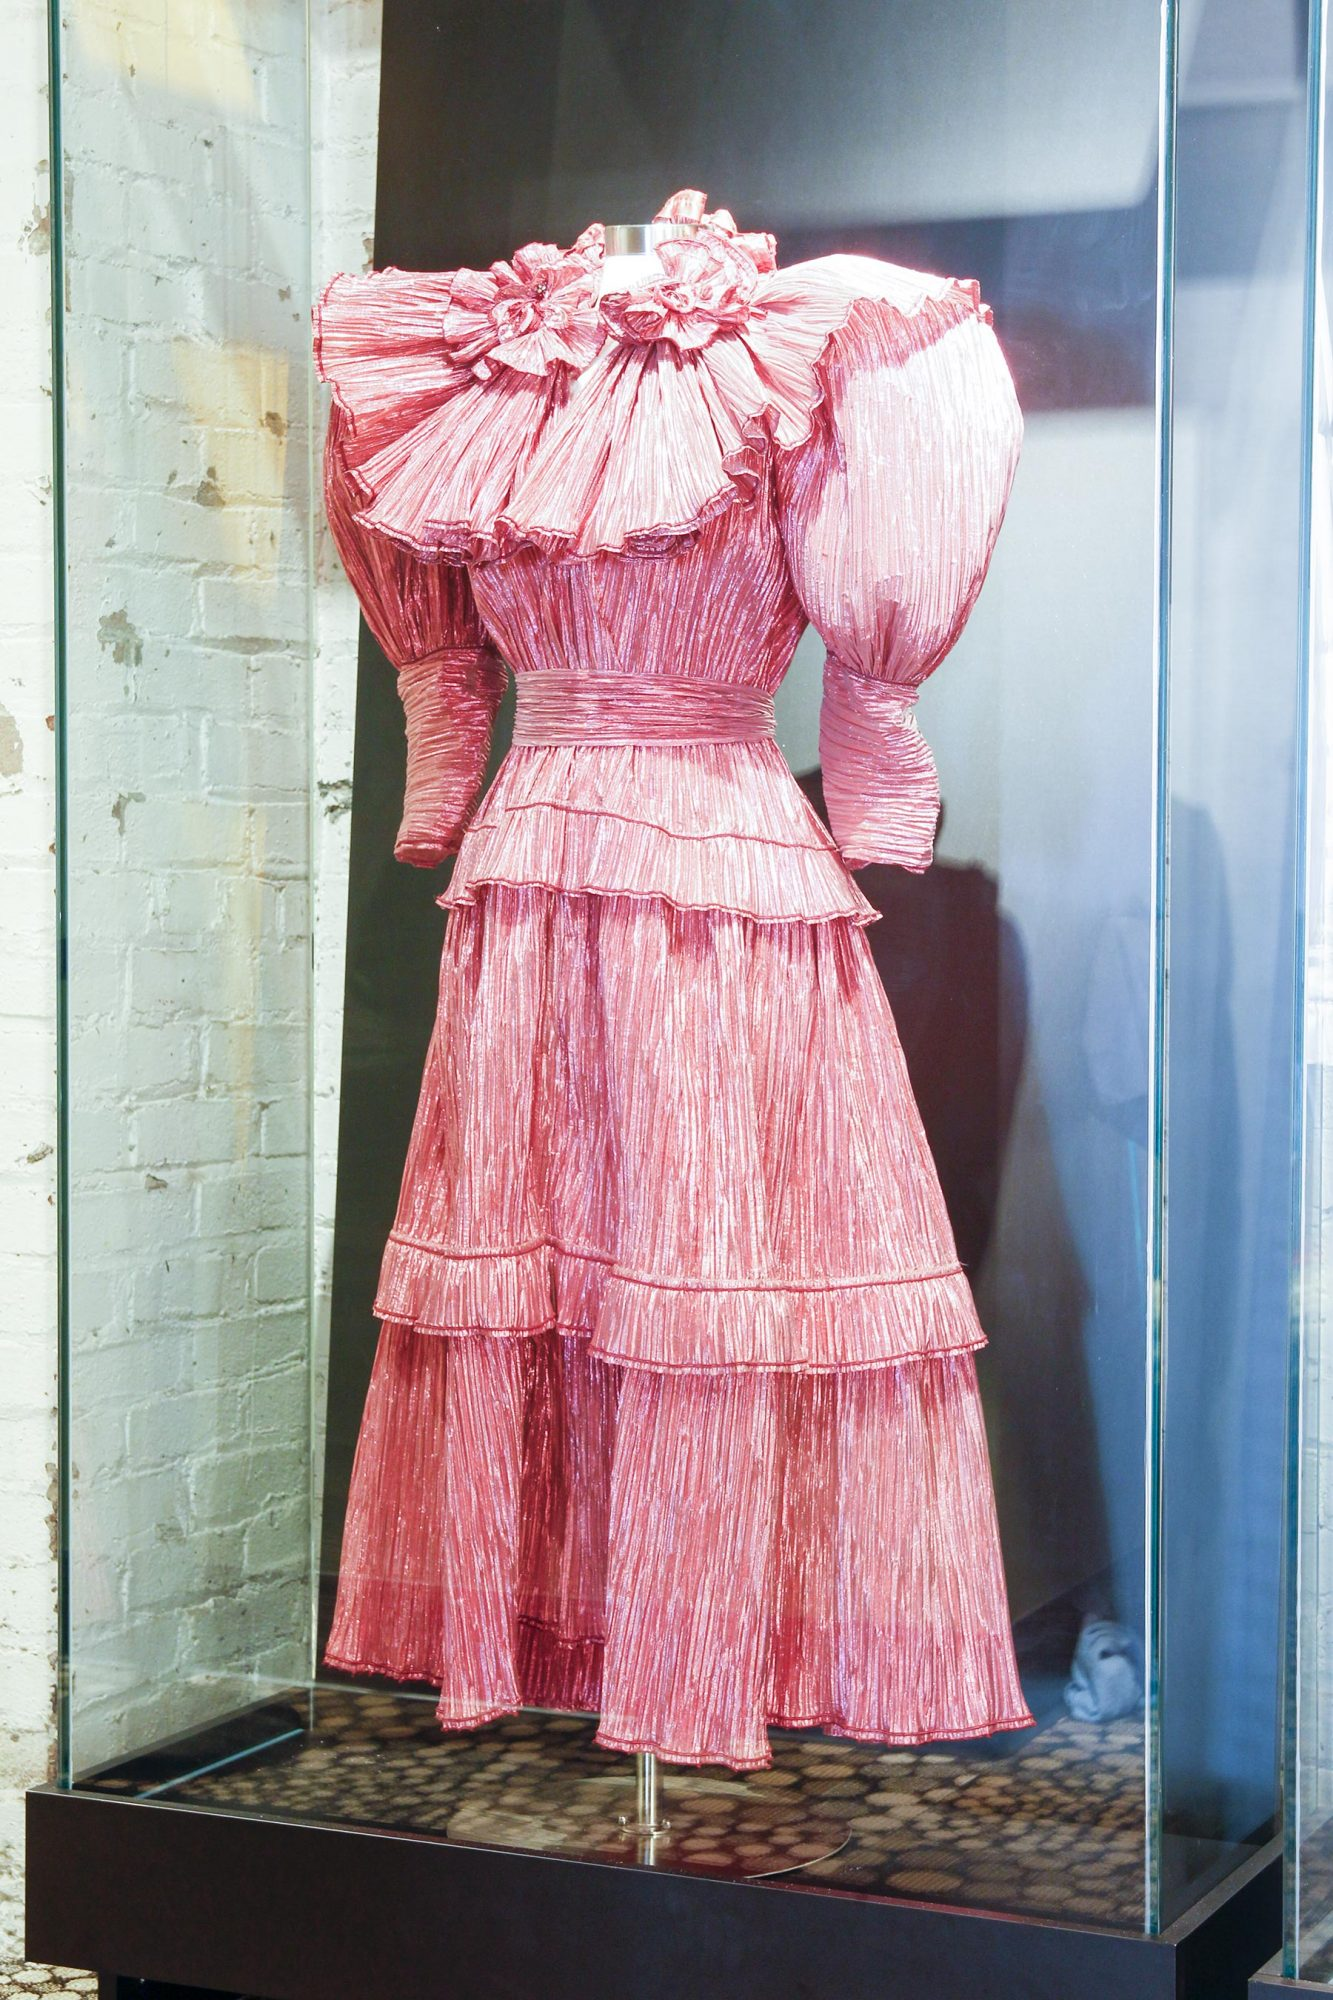 Phyllis Diller's gown from 1987